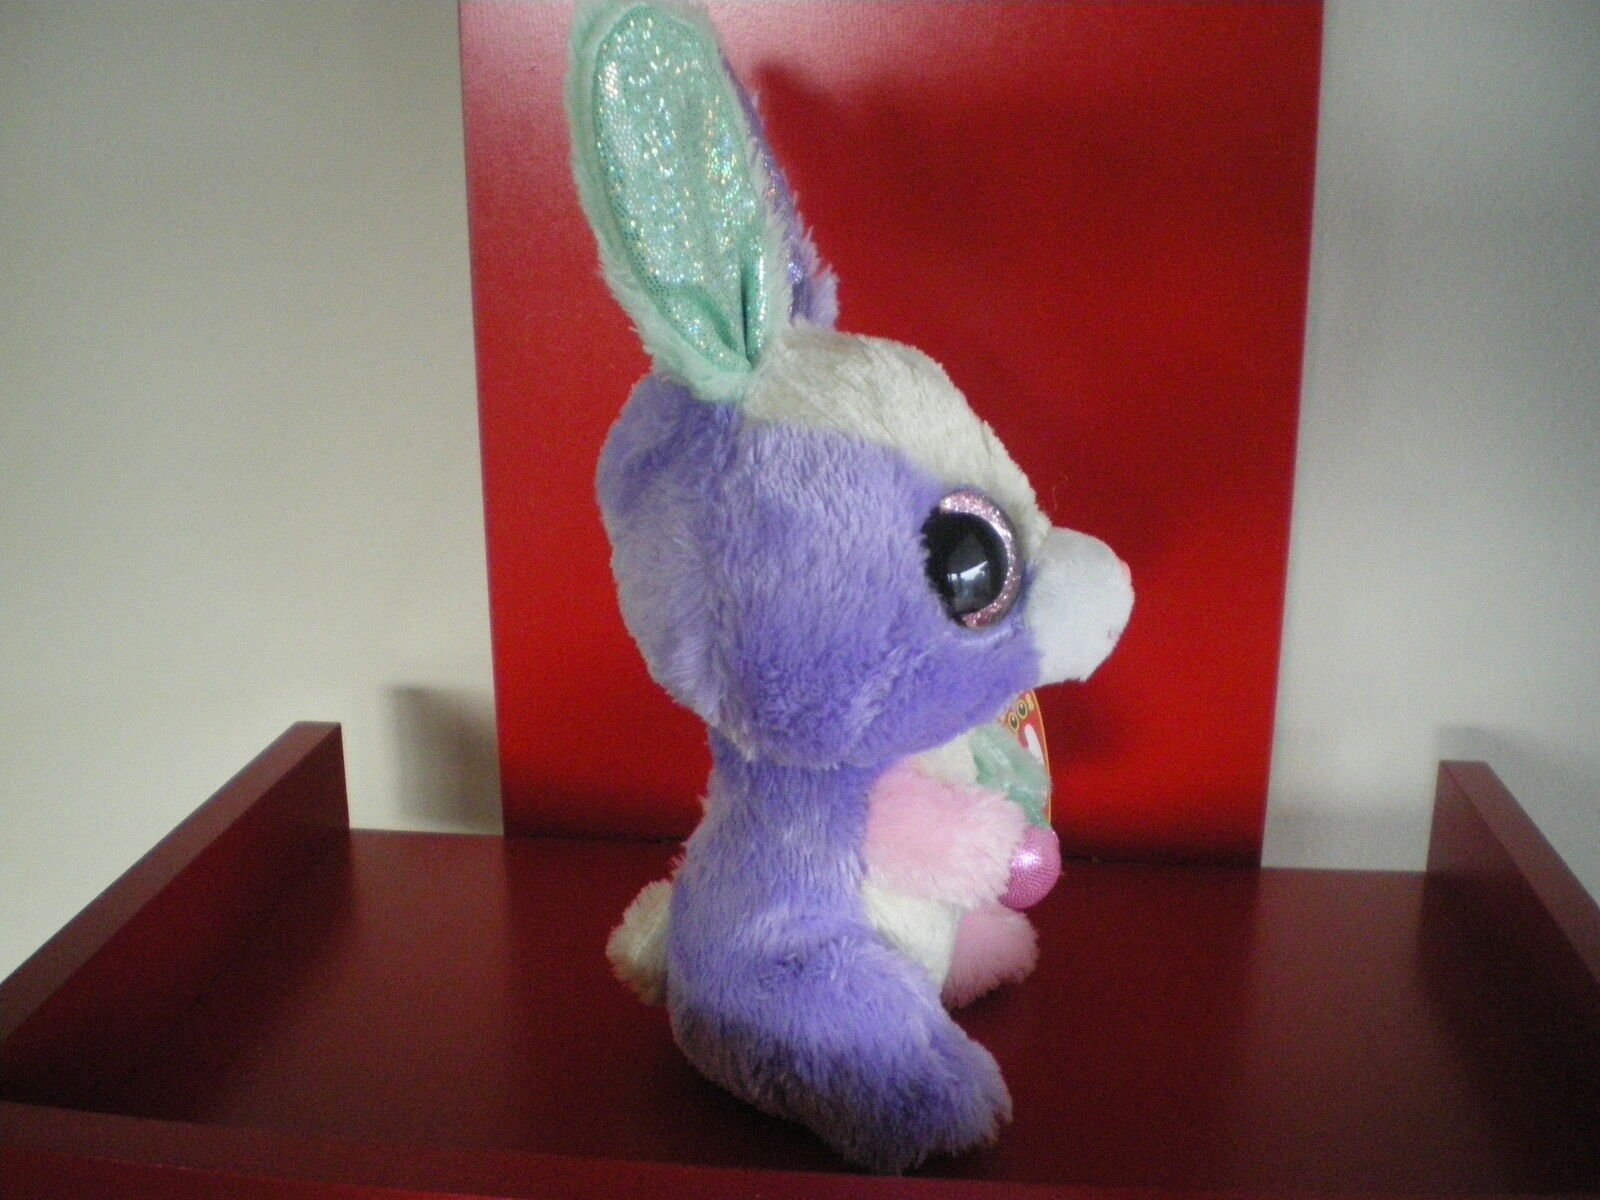 3b0df6abfb0 Ty Beanie Boo Plush - Bloom The Bunny 15cm Easter Special for sale online